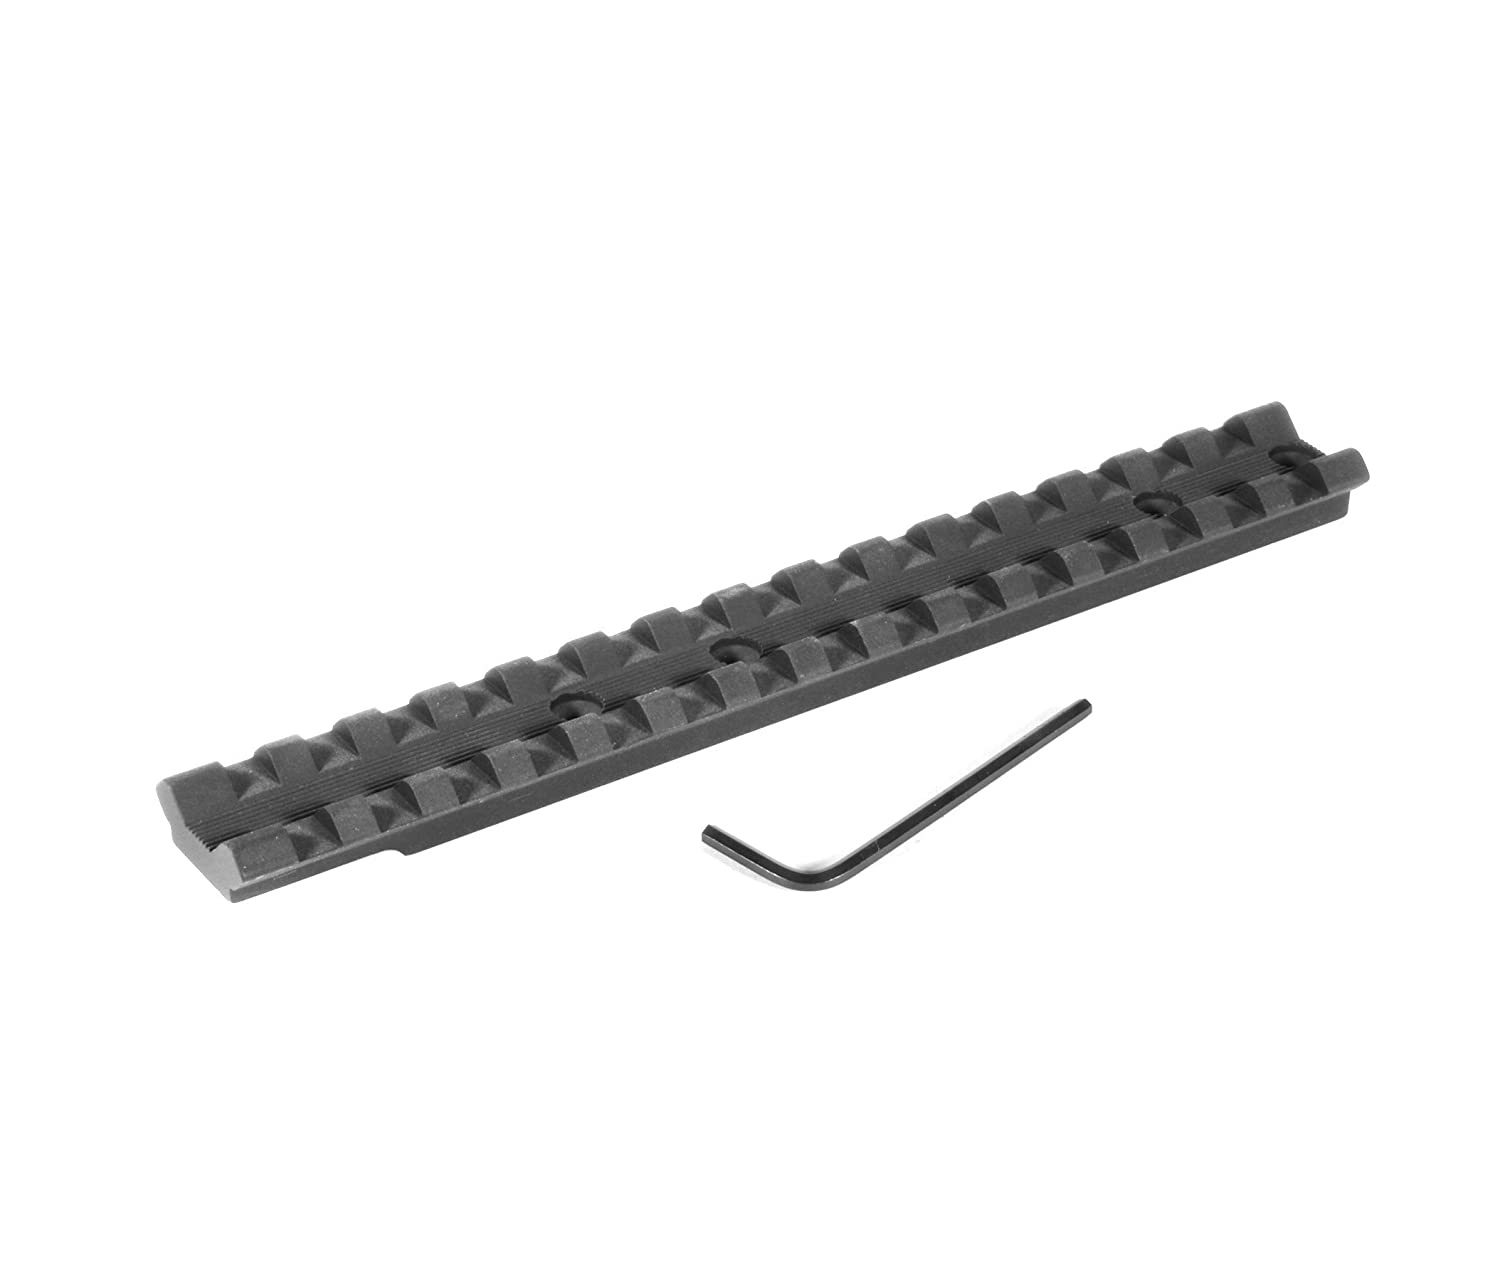 Winchester 1300 Picatinny Scope Rail Mount